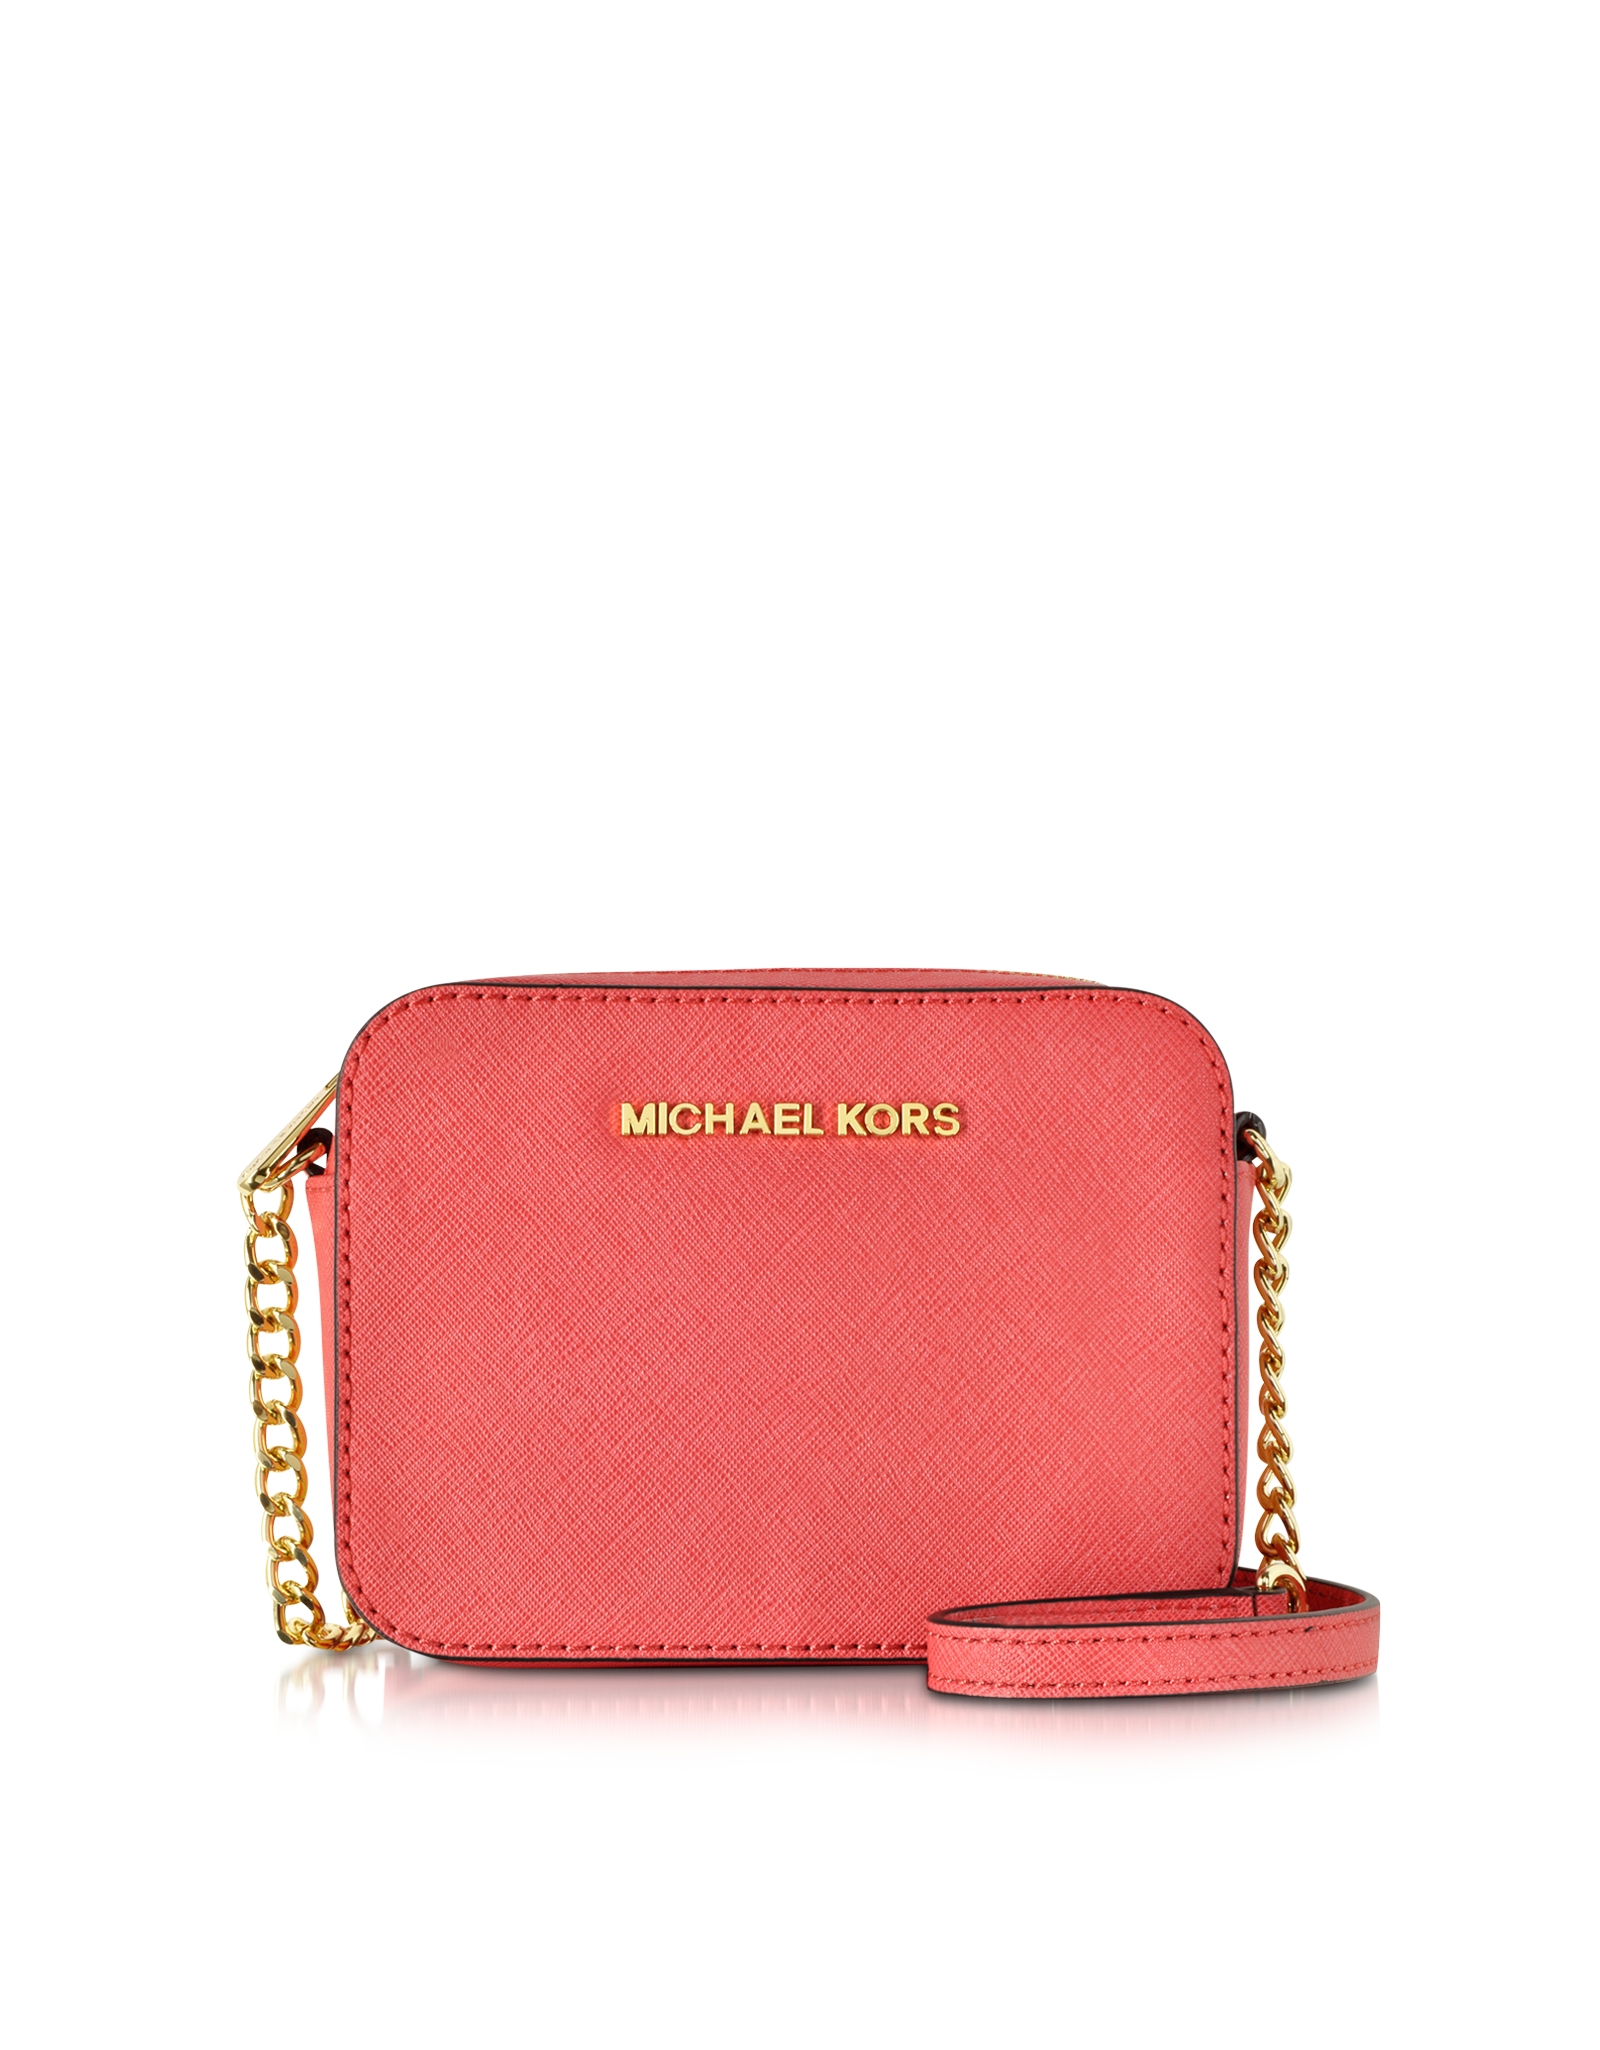 ecc1b0044ed5 ... cheap michael kors jet set travel small saffiano leather crossbody in  pink lyst b6a5c 28442